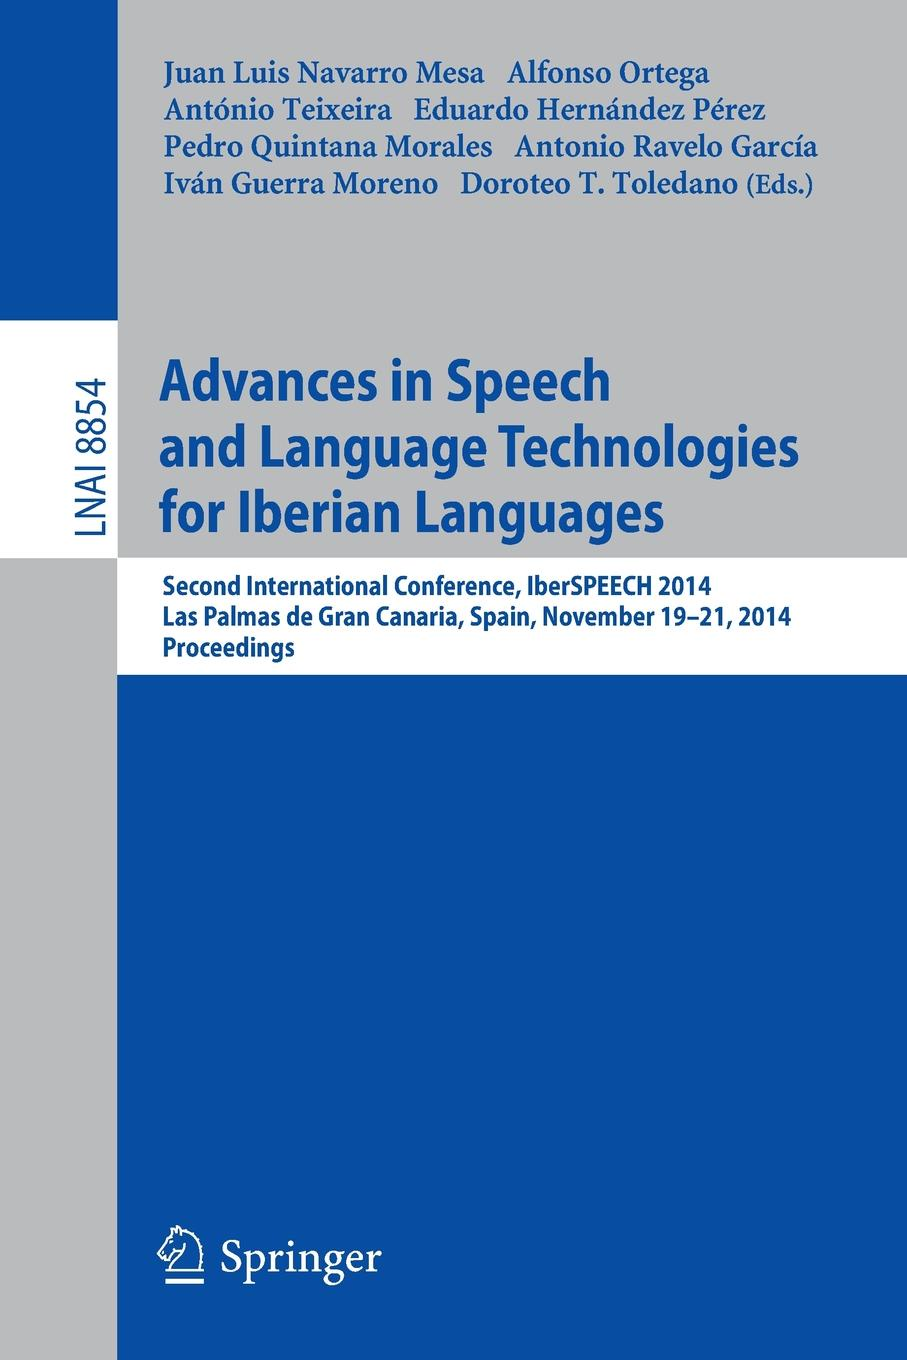 Advances in Speech and Language Technologies for Iberian Languages. IberSPEECH 2014 Conference, Las Palmas de Gran Canaria, Spain, November 19-21, 2014, Proceedings все цены